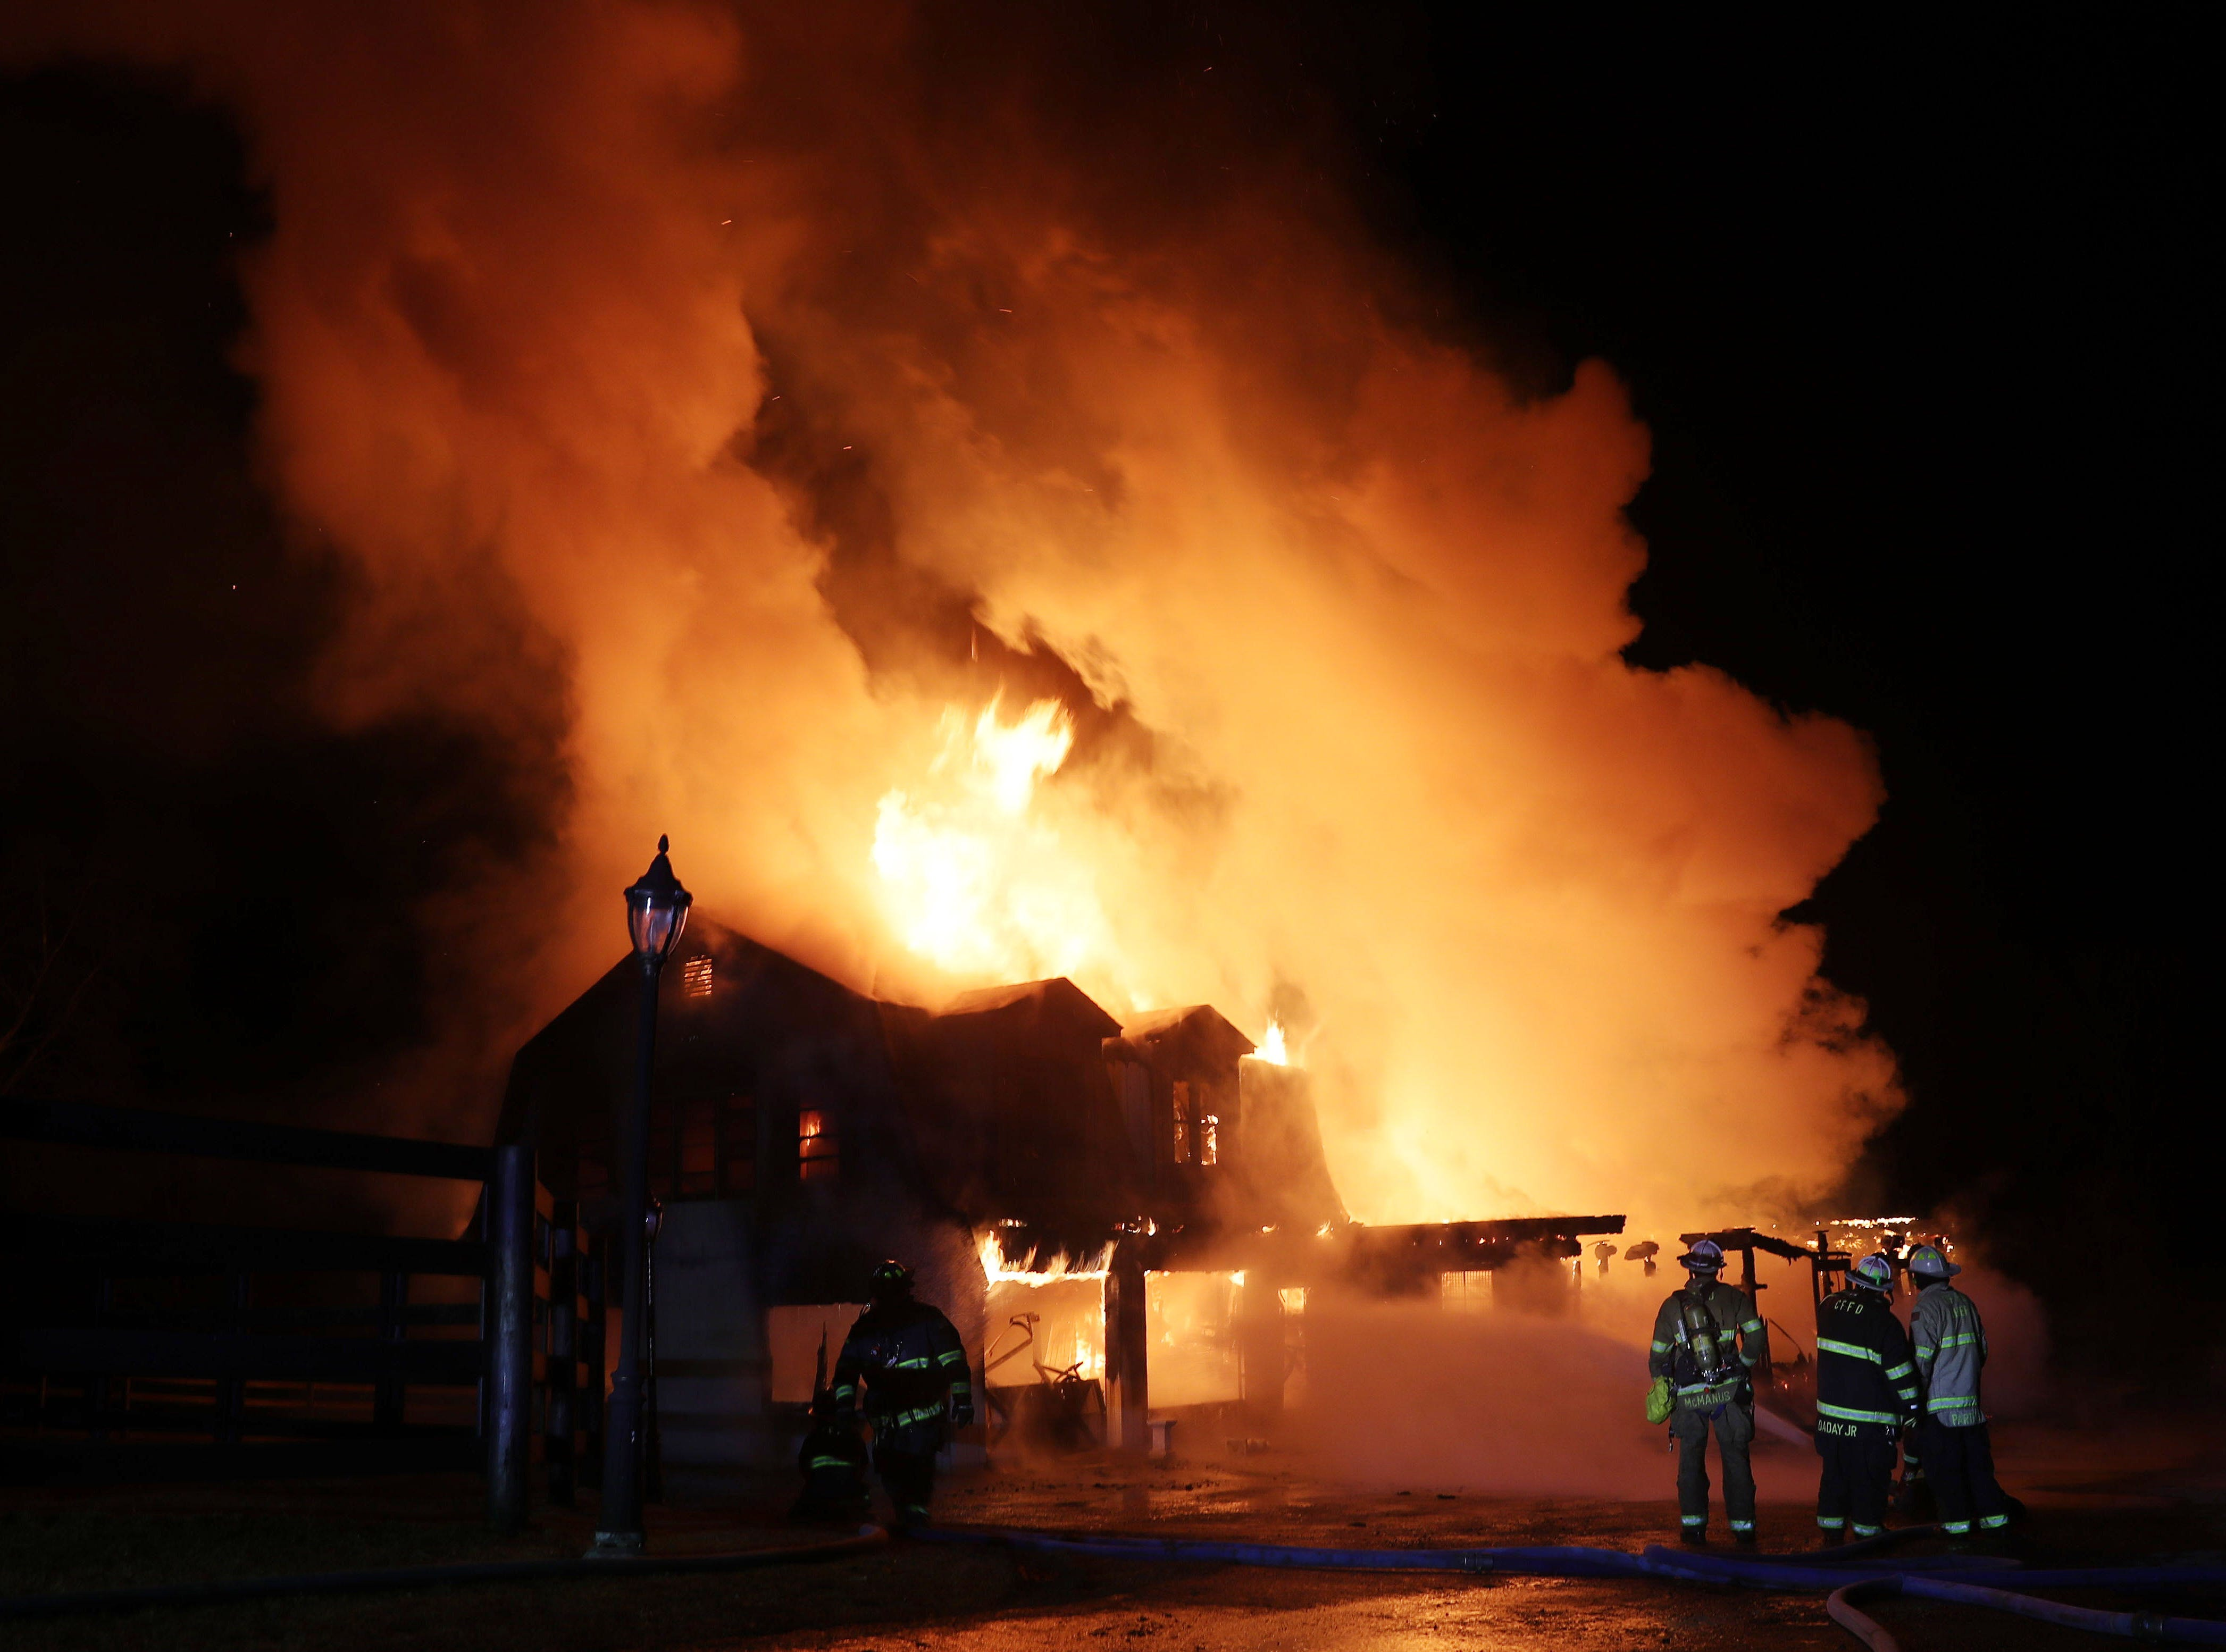 Croton Falls firefighters battle an early morning fire that destroyed a large barn on Croton Falls Road in the town of Carmel Feb. 7,  2019.